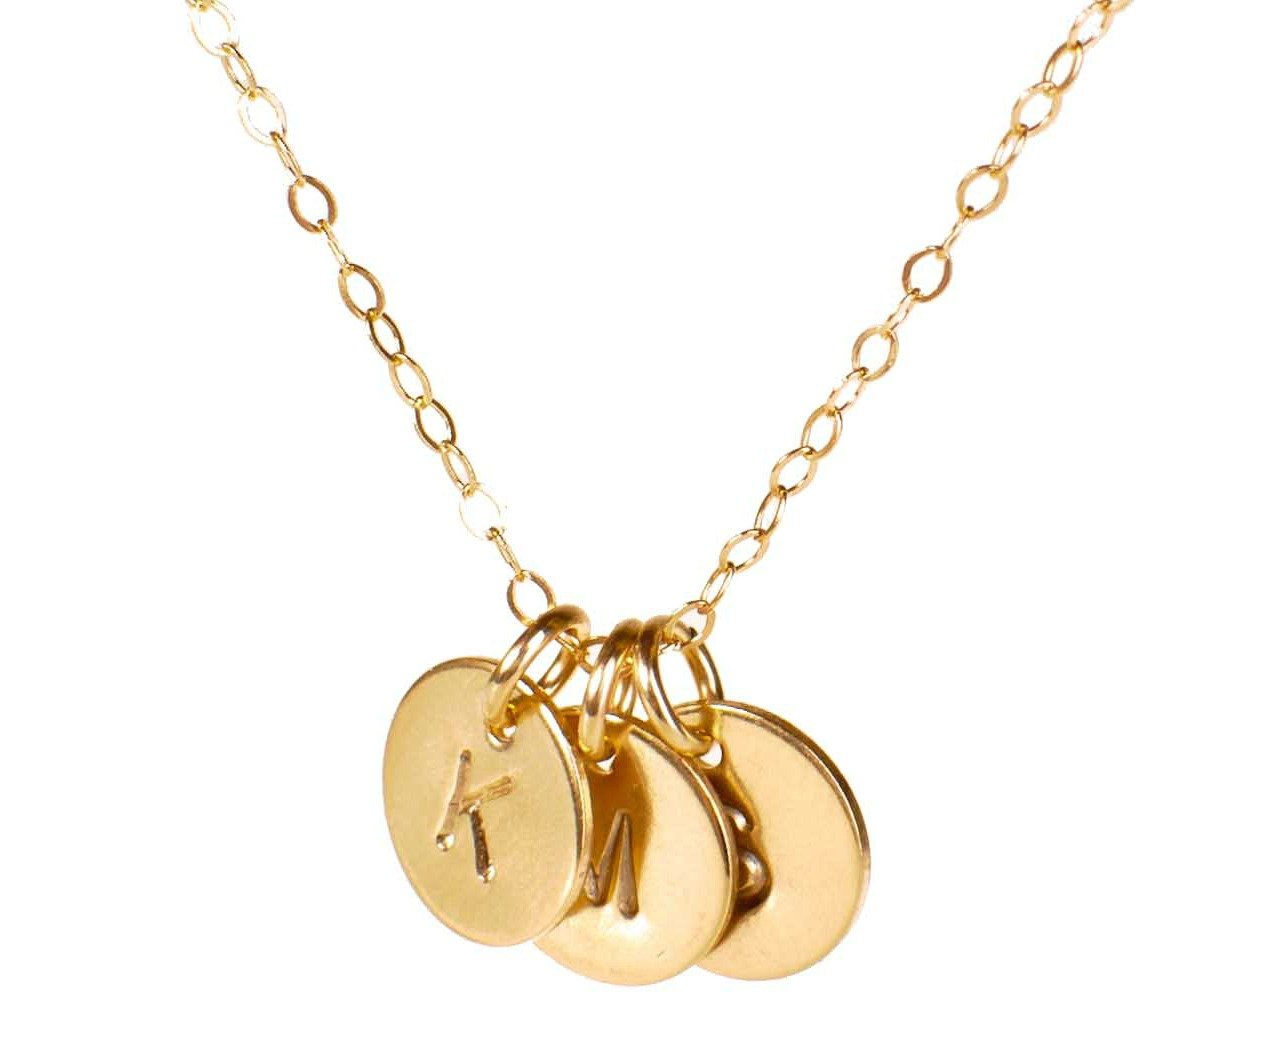 Efy Tal Jewelry Three Initial Necklace, 3 Dainty Gold Filled Personalized Initials of Your Choice